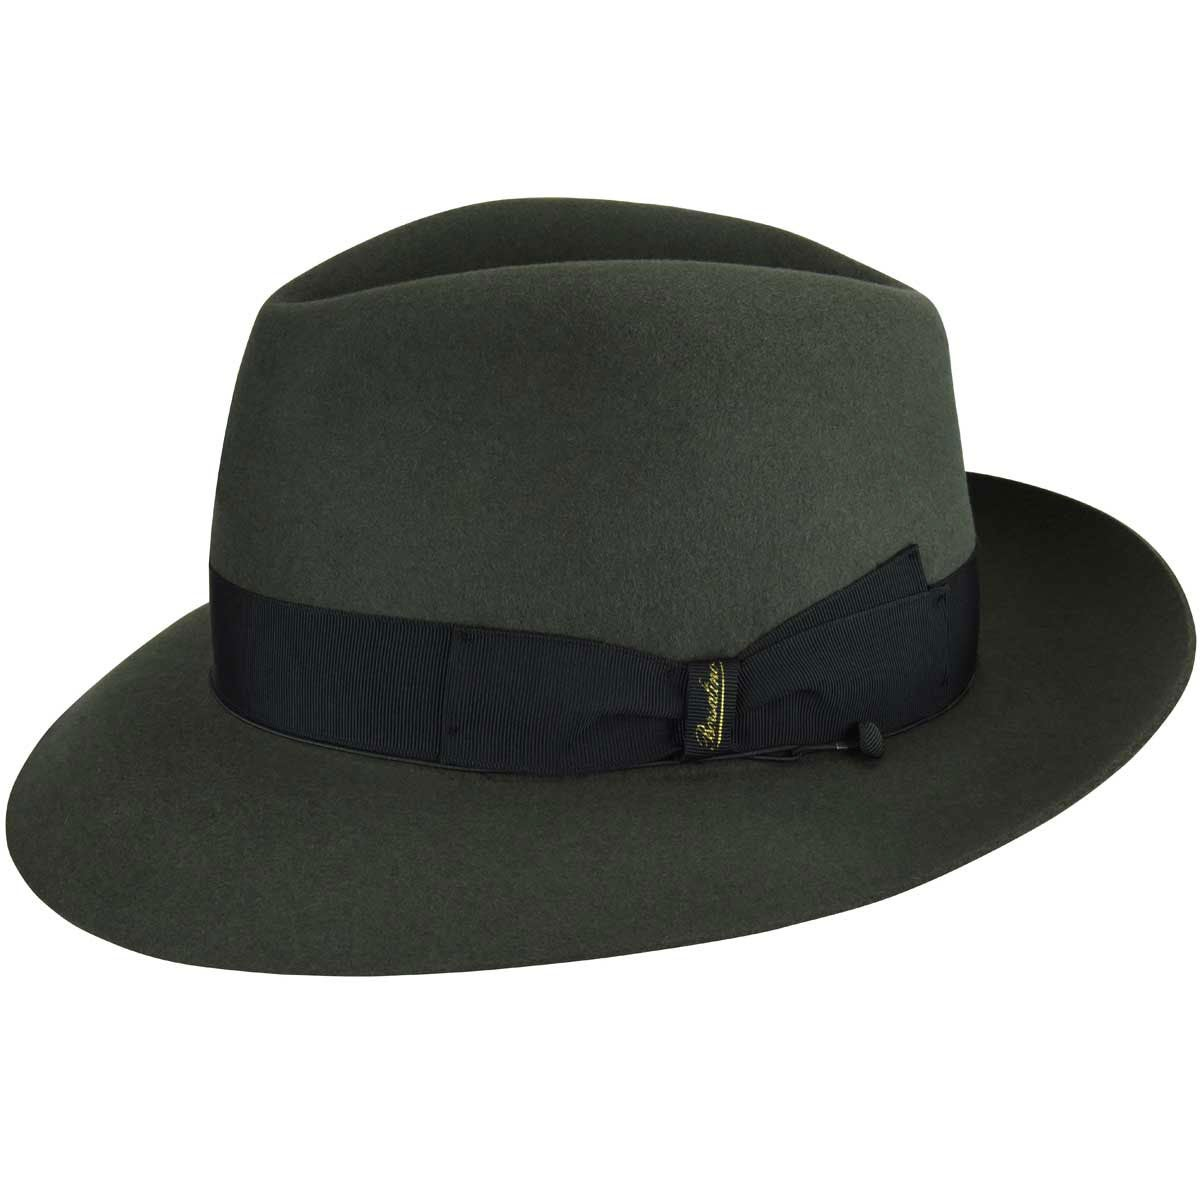 1920s Mens Hats – 8 Popular Styles Bellini Fedora $430.00 AT vintagedancer.com